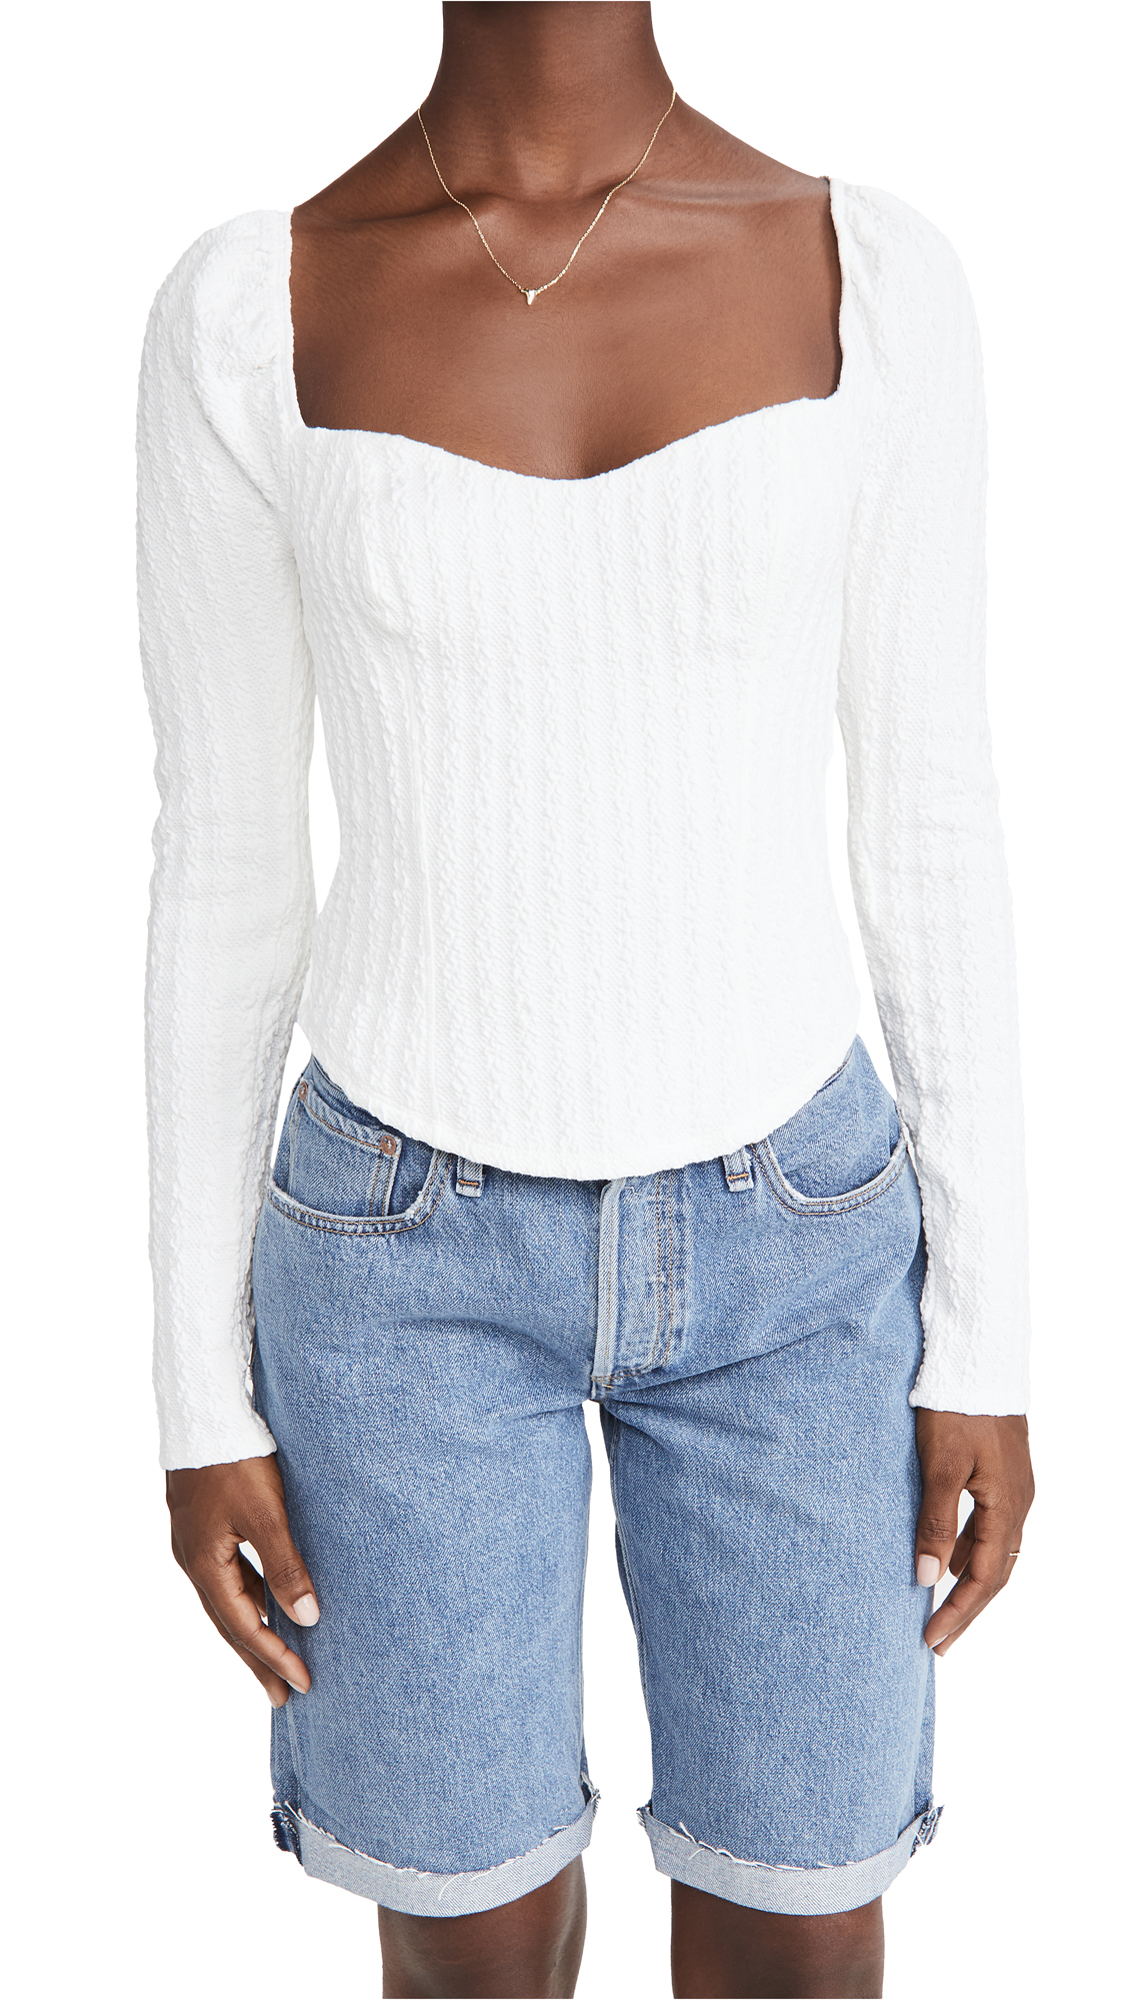 Free People Tops BRITTANY TOP